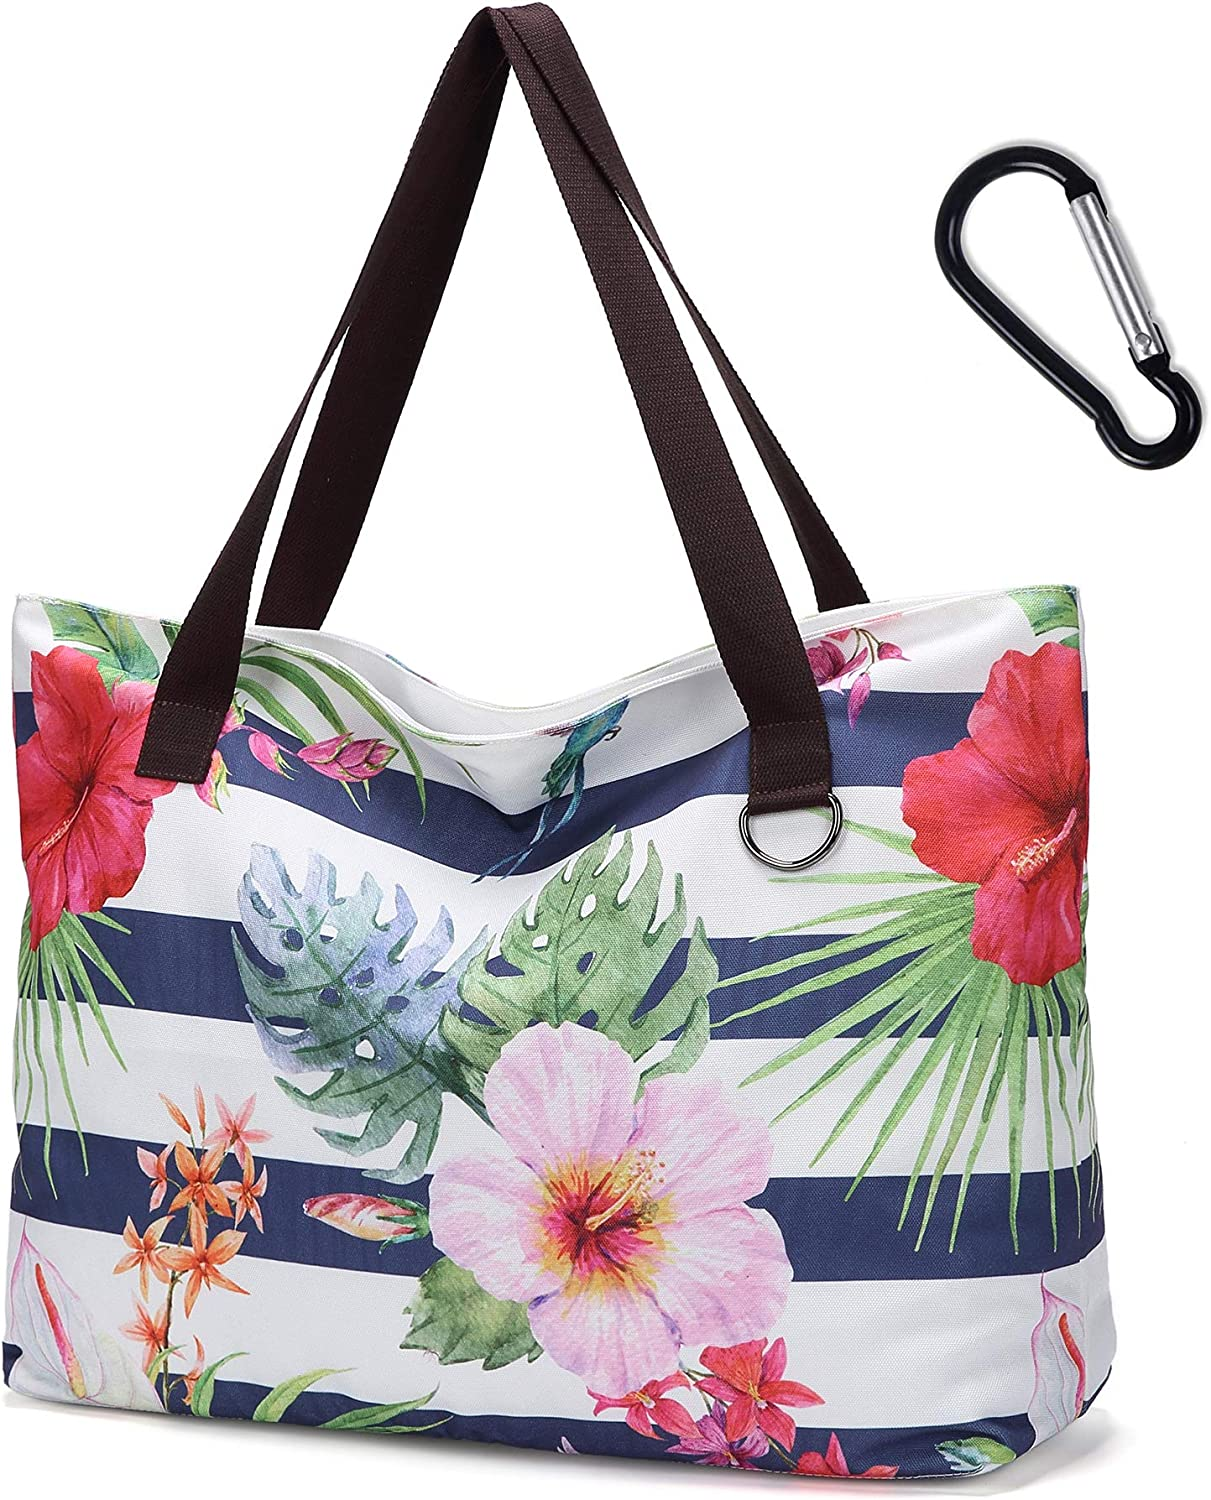 Extra Large OFFicial mail order Beach Tote Bags Waterproof Sandproof Travel Ca - Max 46% OFF XXL